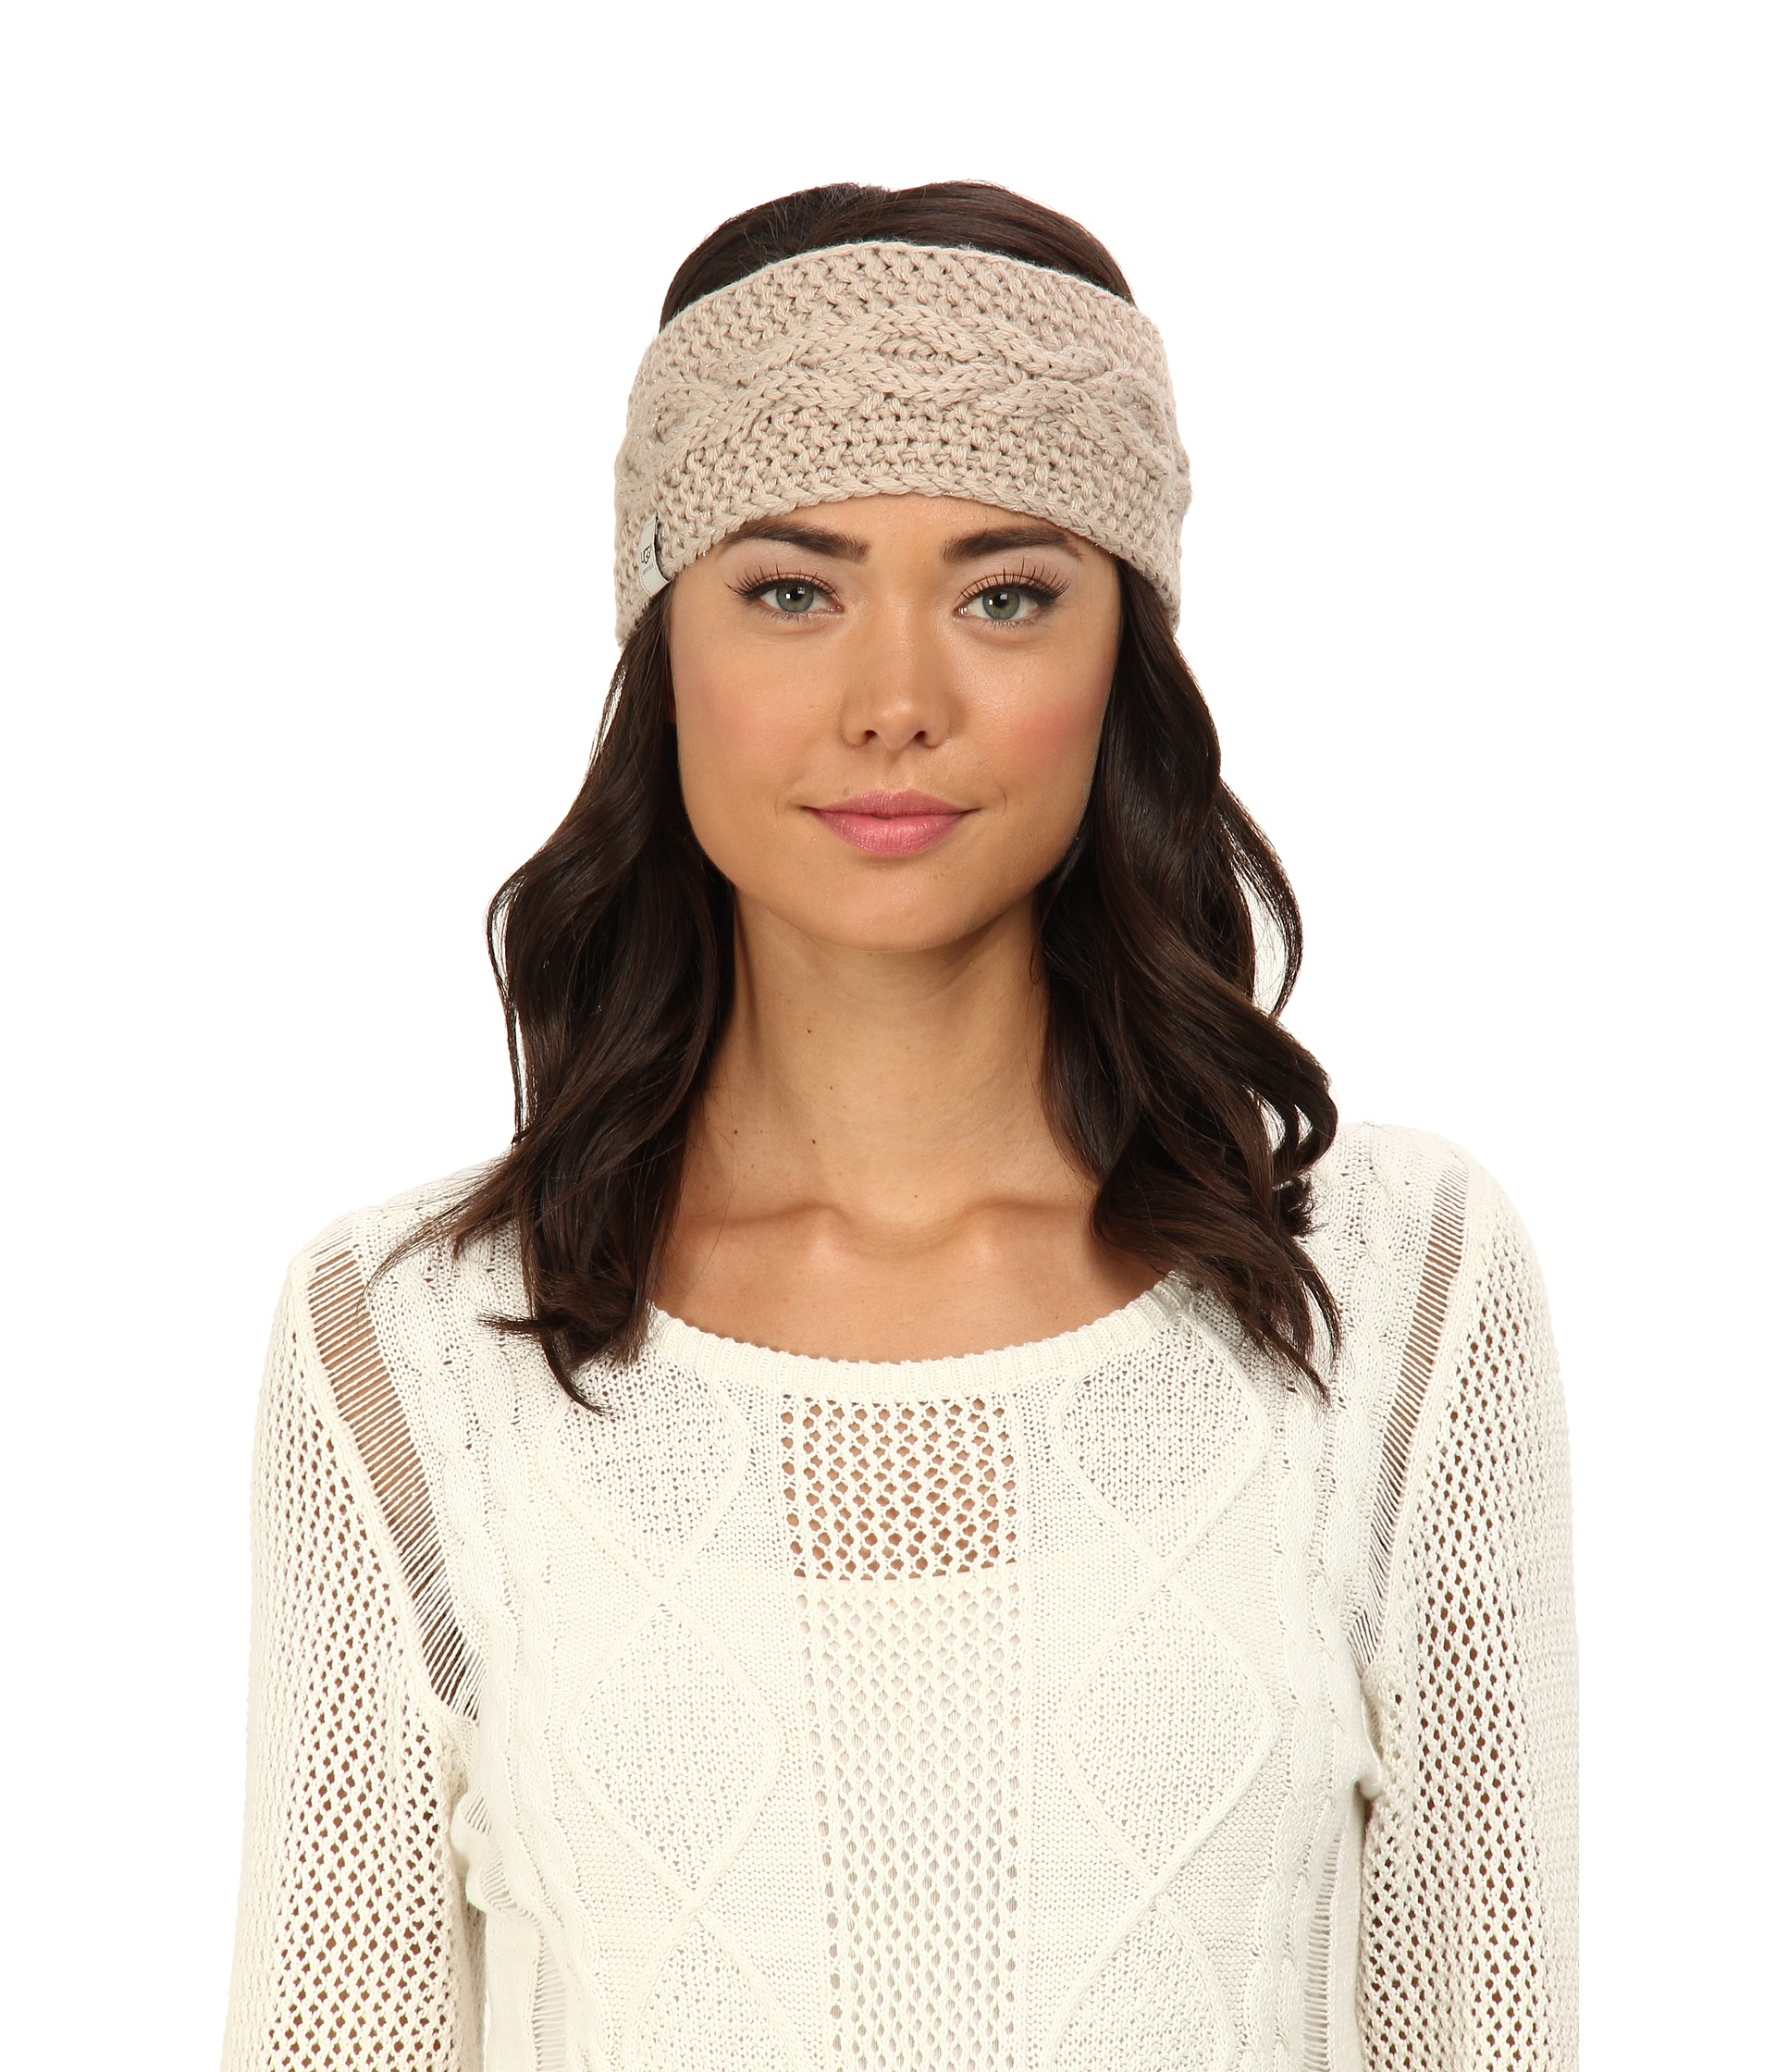 Ugg Nyla Cable Headband With Lurex In Gray Moonlight M